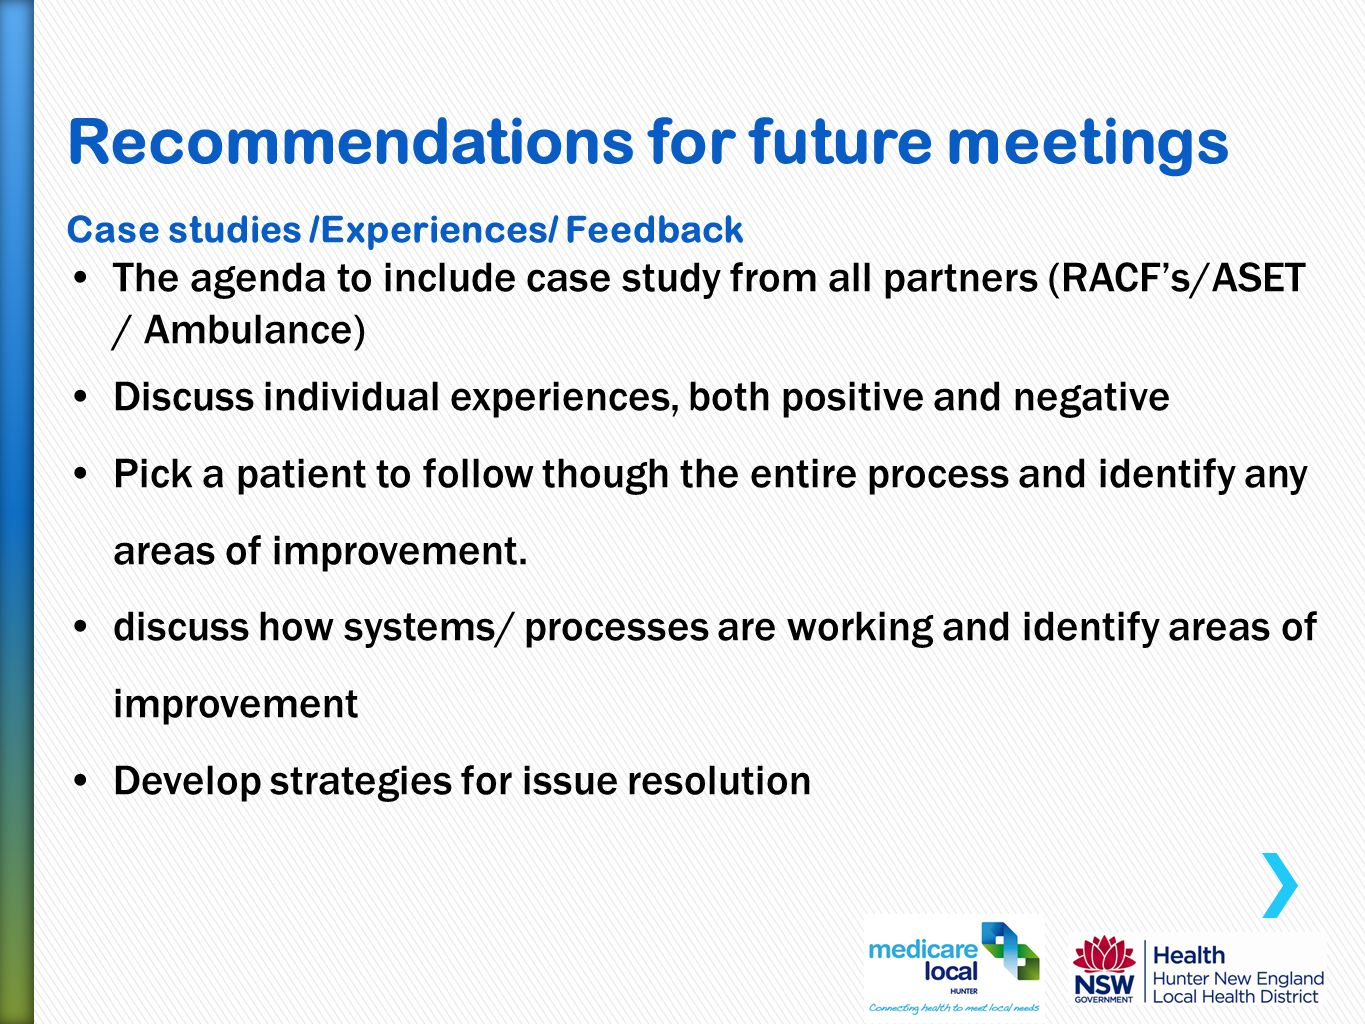 Recommendations for future meetings Case studies /Experiences/ Feedback The agenda to include case study from all partners (RACF's/ASET / Ambulance) D